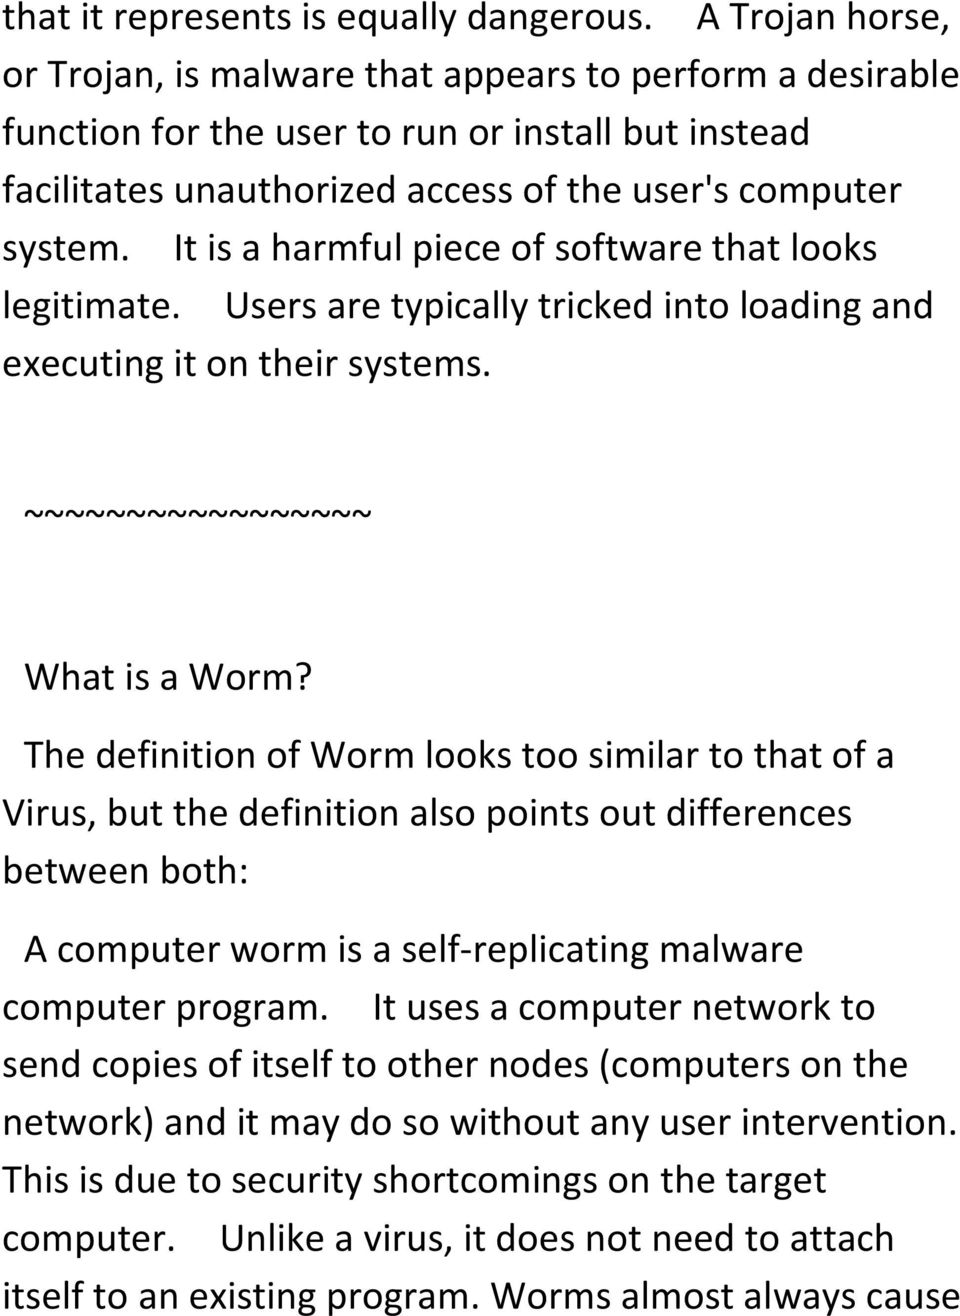 It is a harmful piece of software that looks legitimate. Users are typically tricked into loading and executing it on their systems. ~~~~~~~~~~~~~~~~~ What is a Worm?